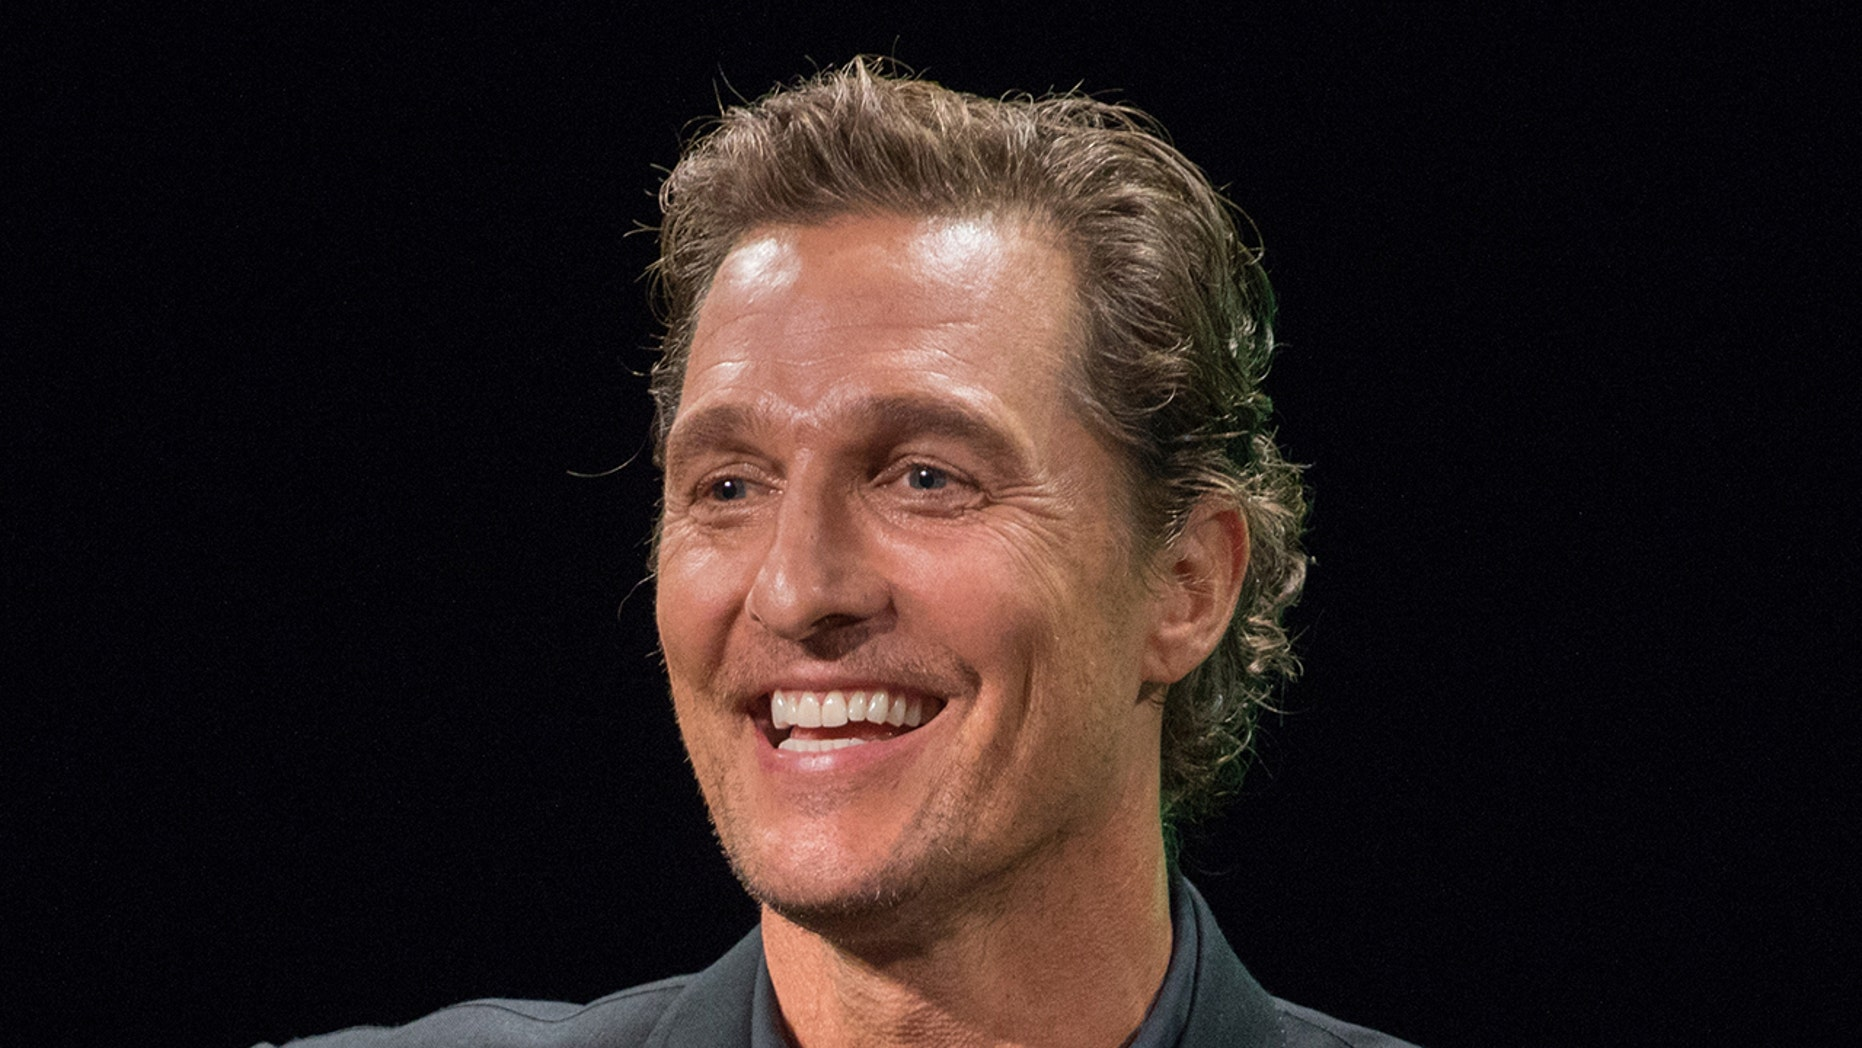 Matthew McConaughey shares his dad's advice on pursuit of acting: Don't 'half-a-- it'